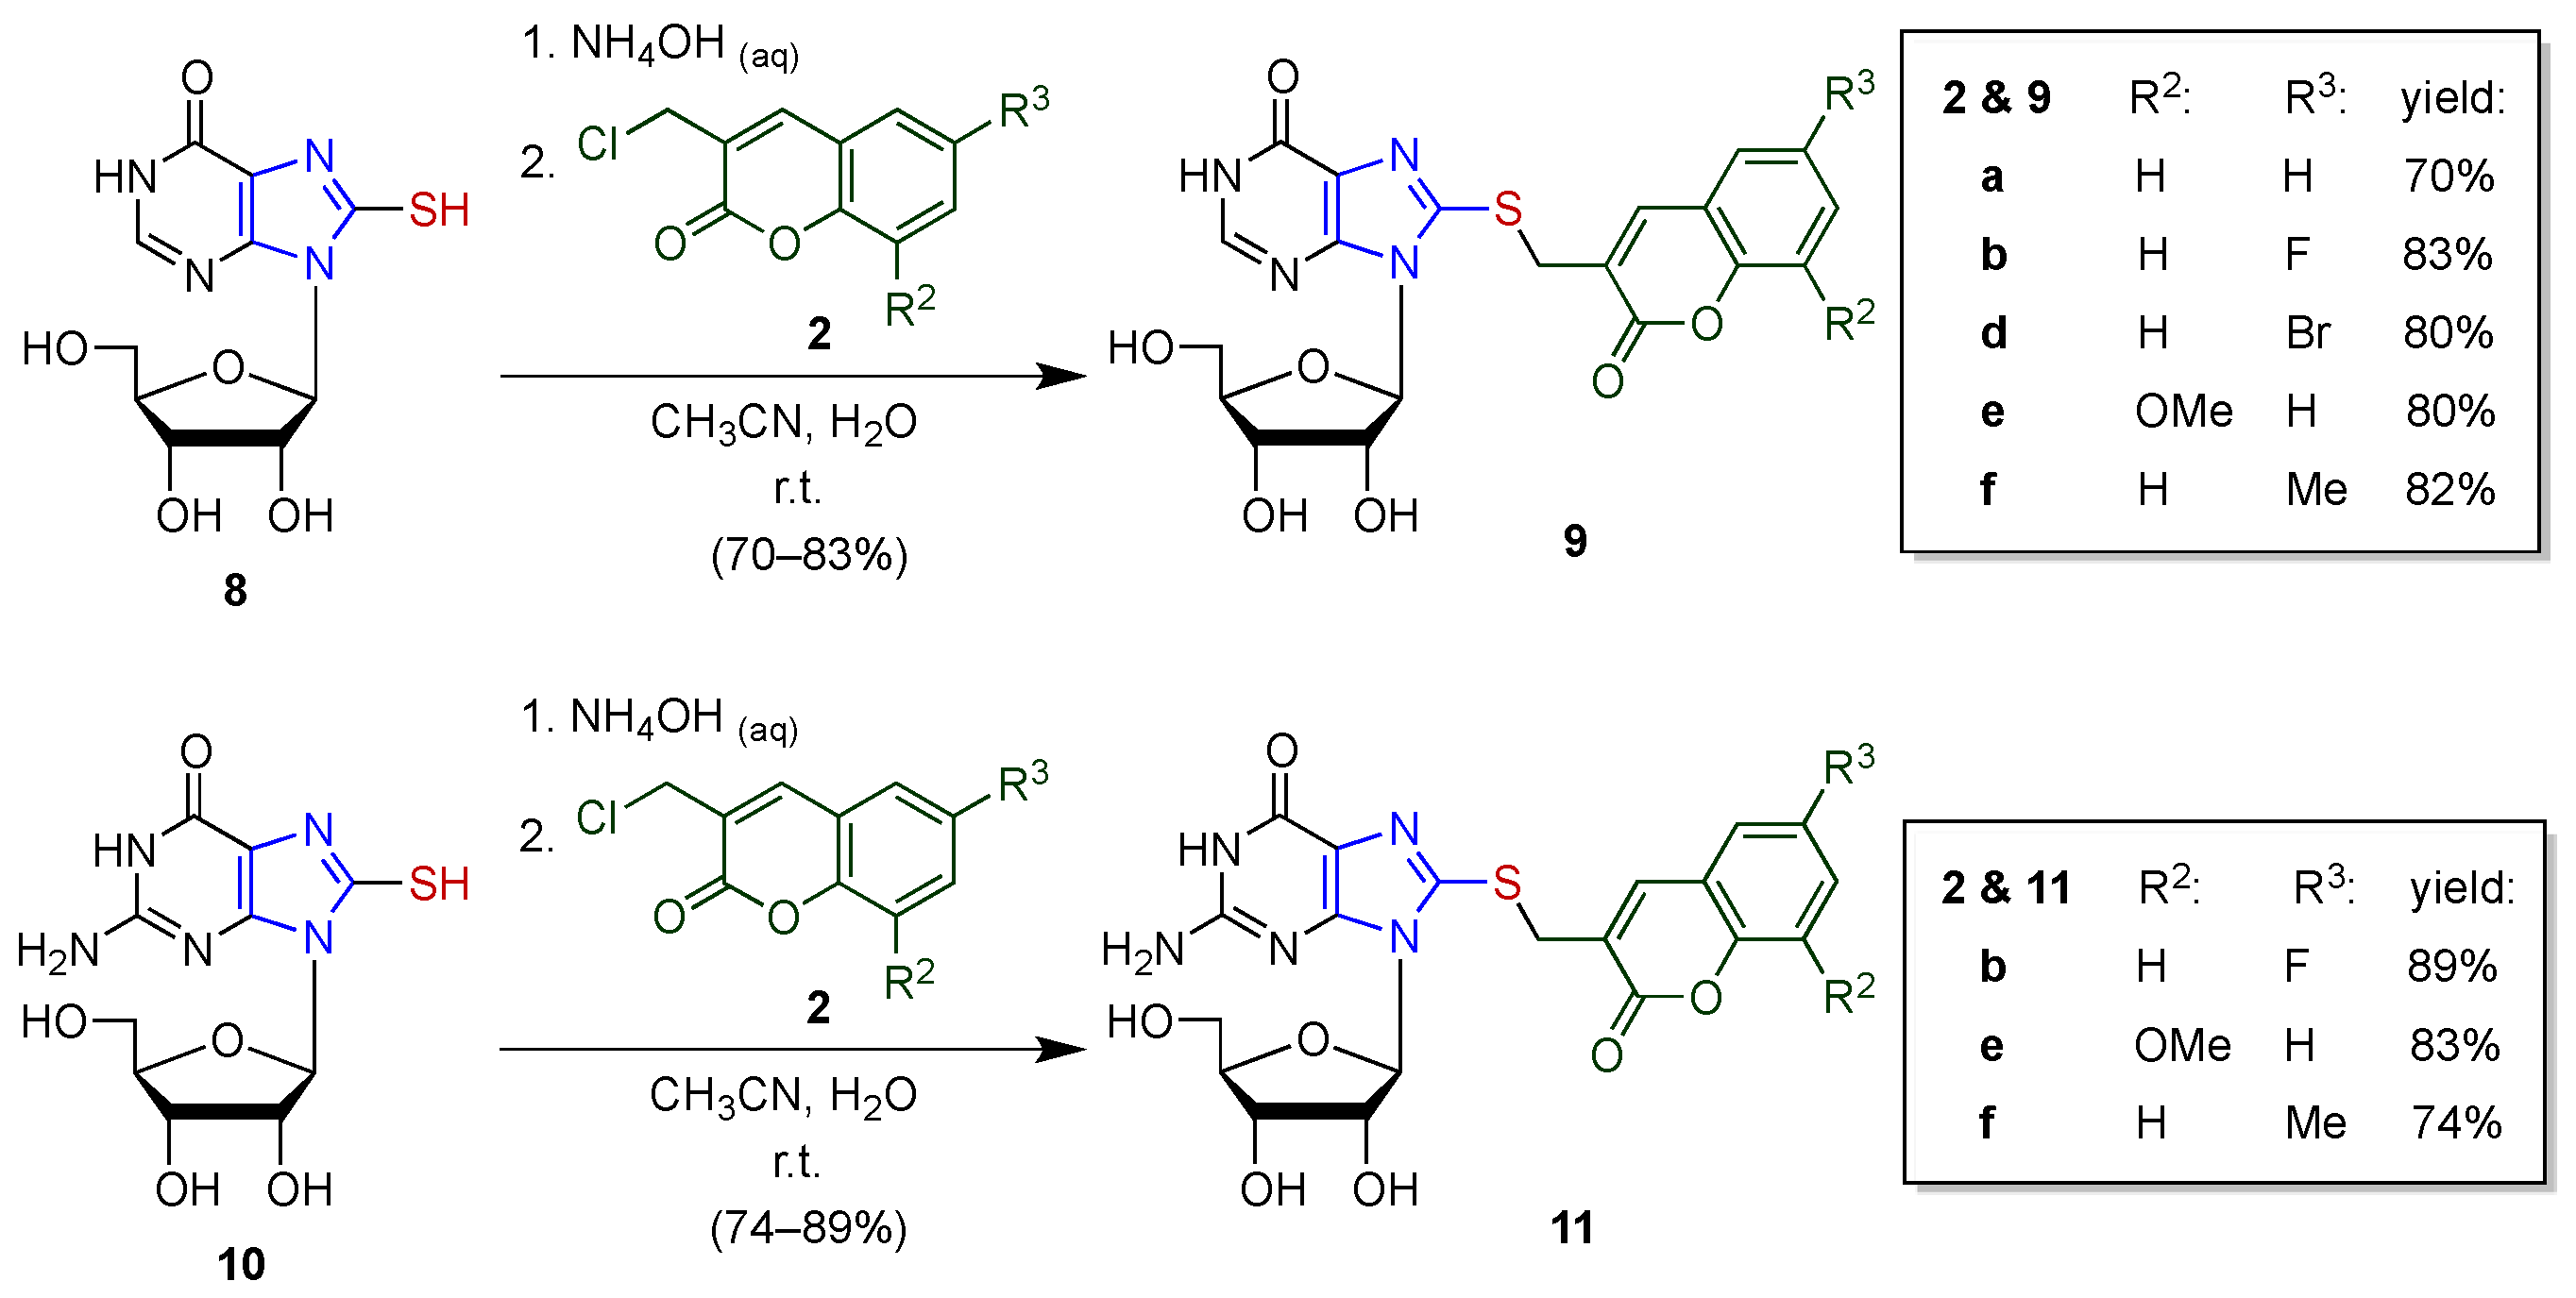 imidazole structure activity relationship of diazepam